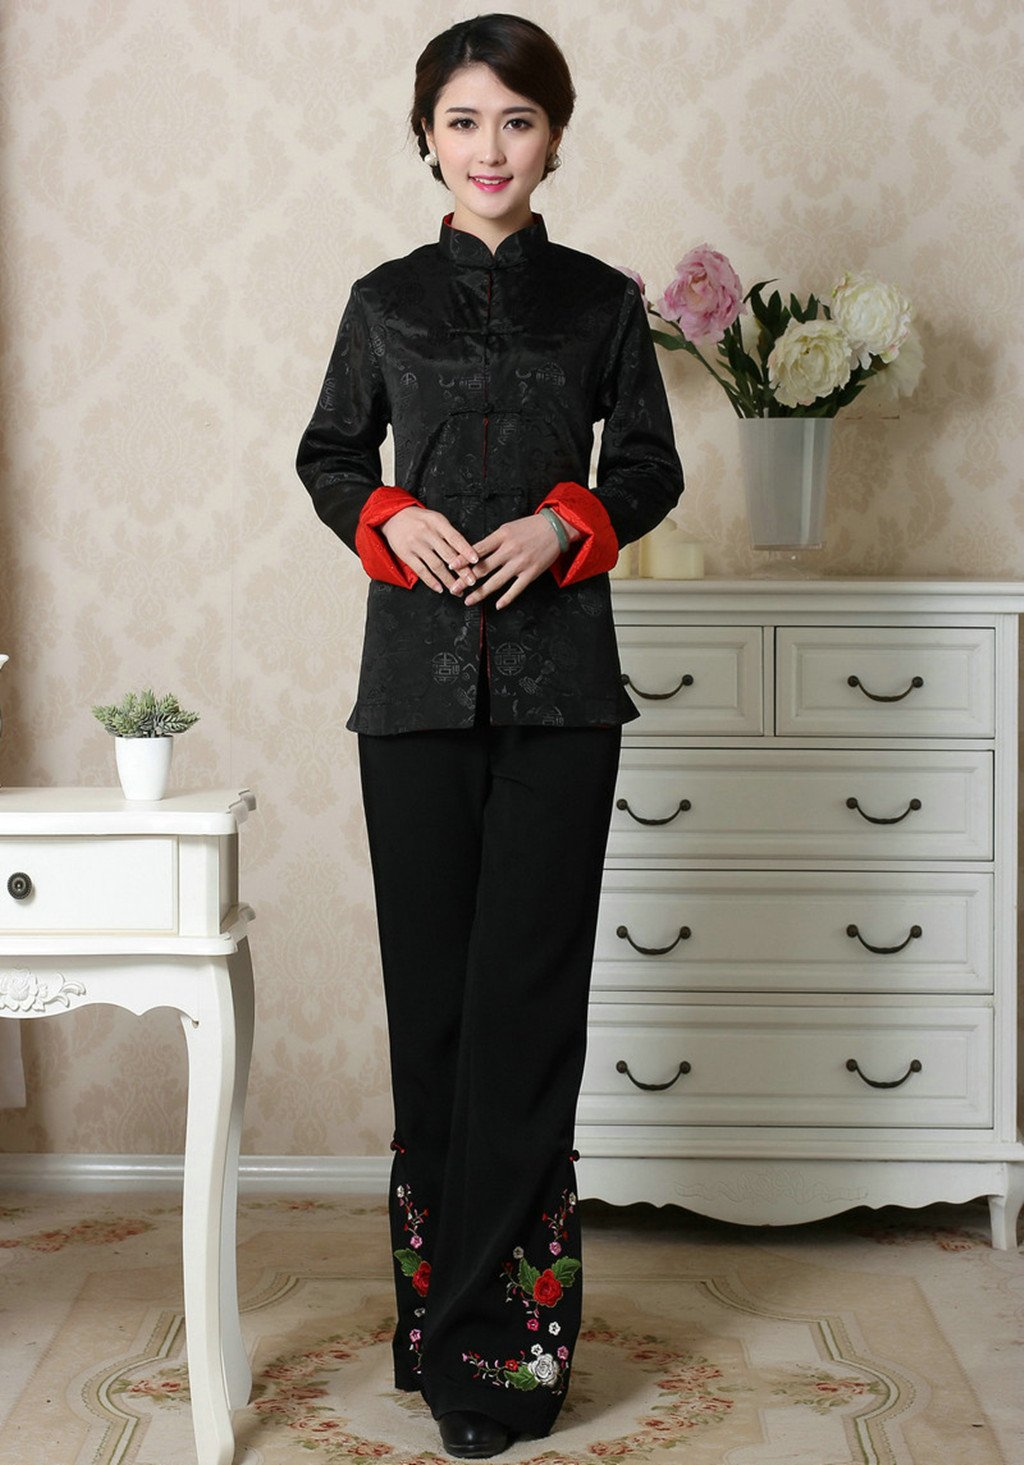 Womens Tang Suits Womens Leisurewear Double-sided Wear Spring and Autumn Womens Clothes Long sleeved Coat Chinese Jackets by Womens Tang Suit (Image #5)